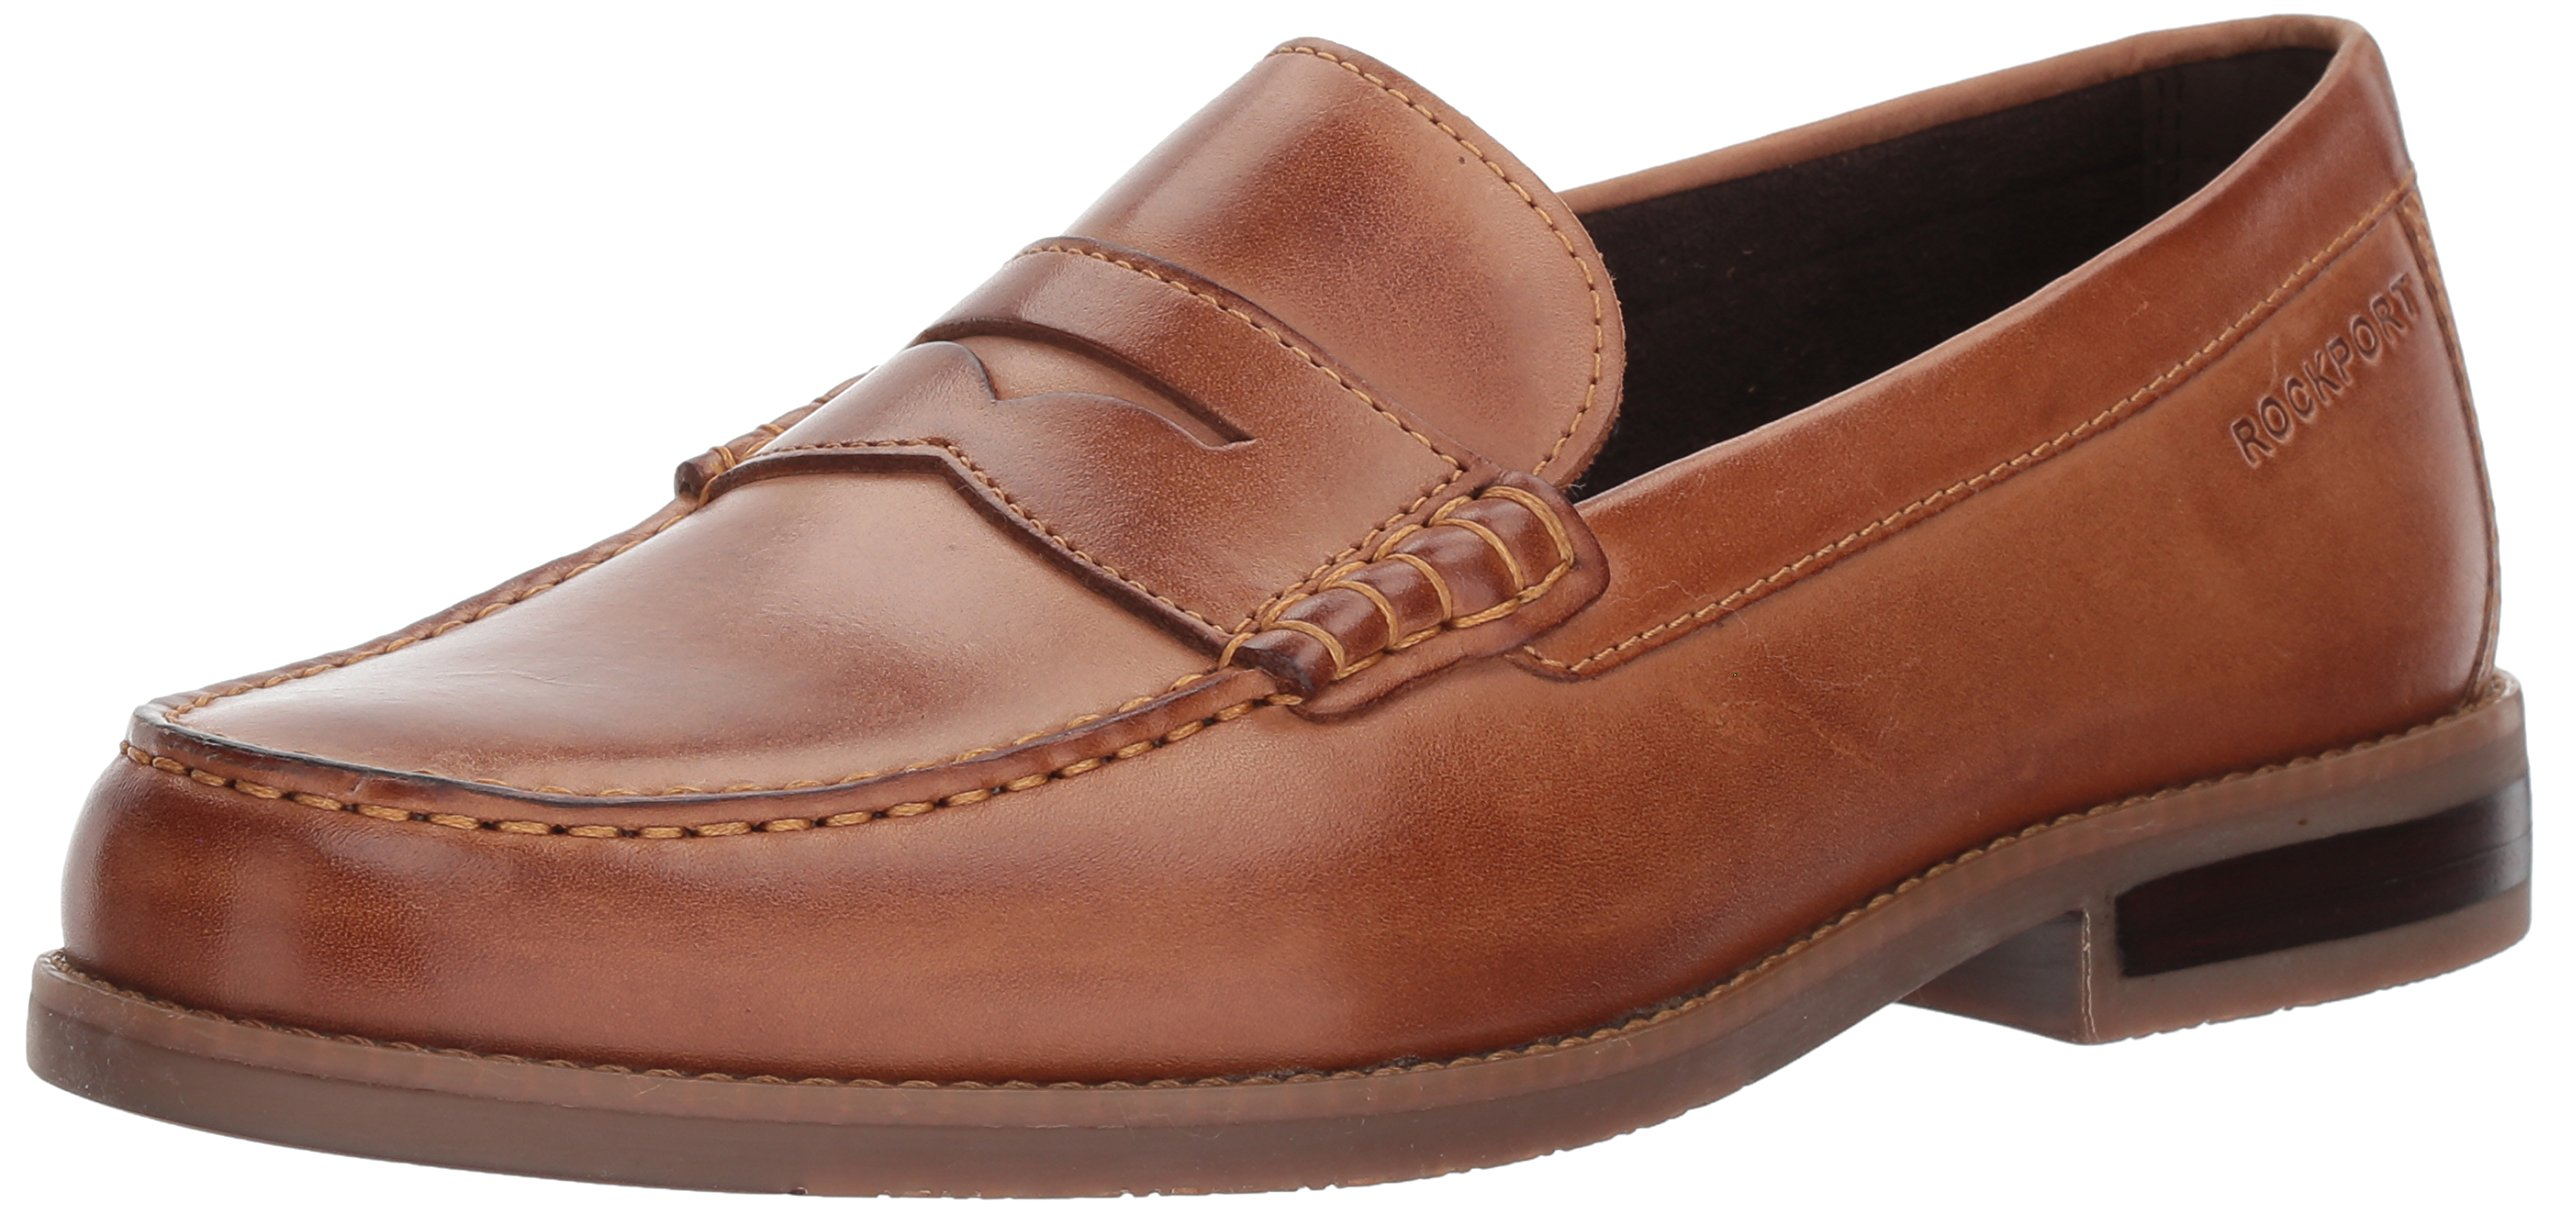 Rockport Men's Curtys Penny Penny Loafer, Cognac, 10 M US